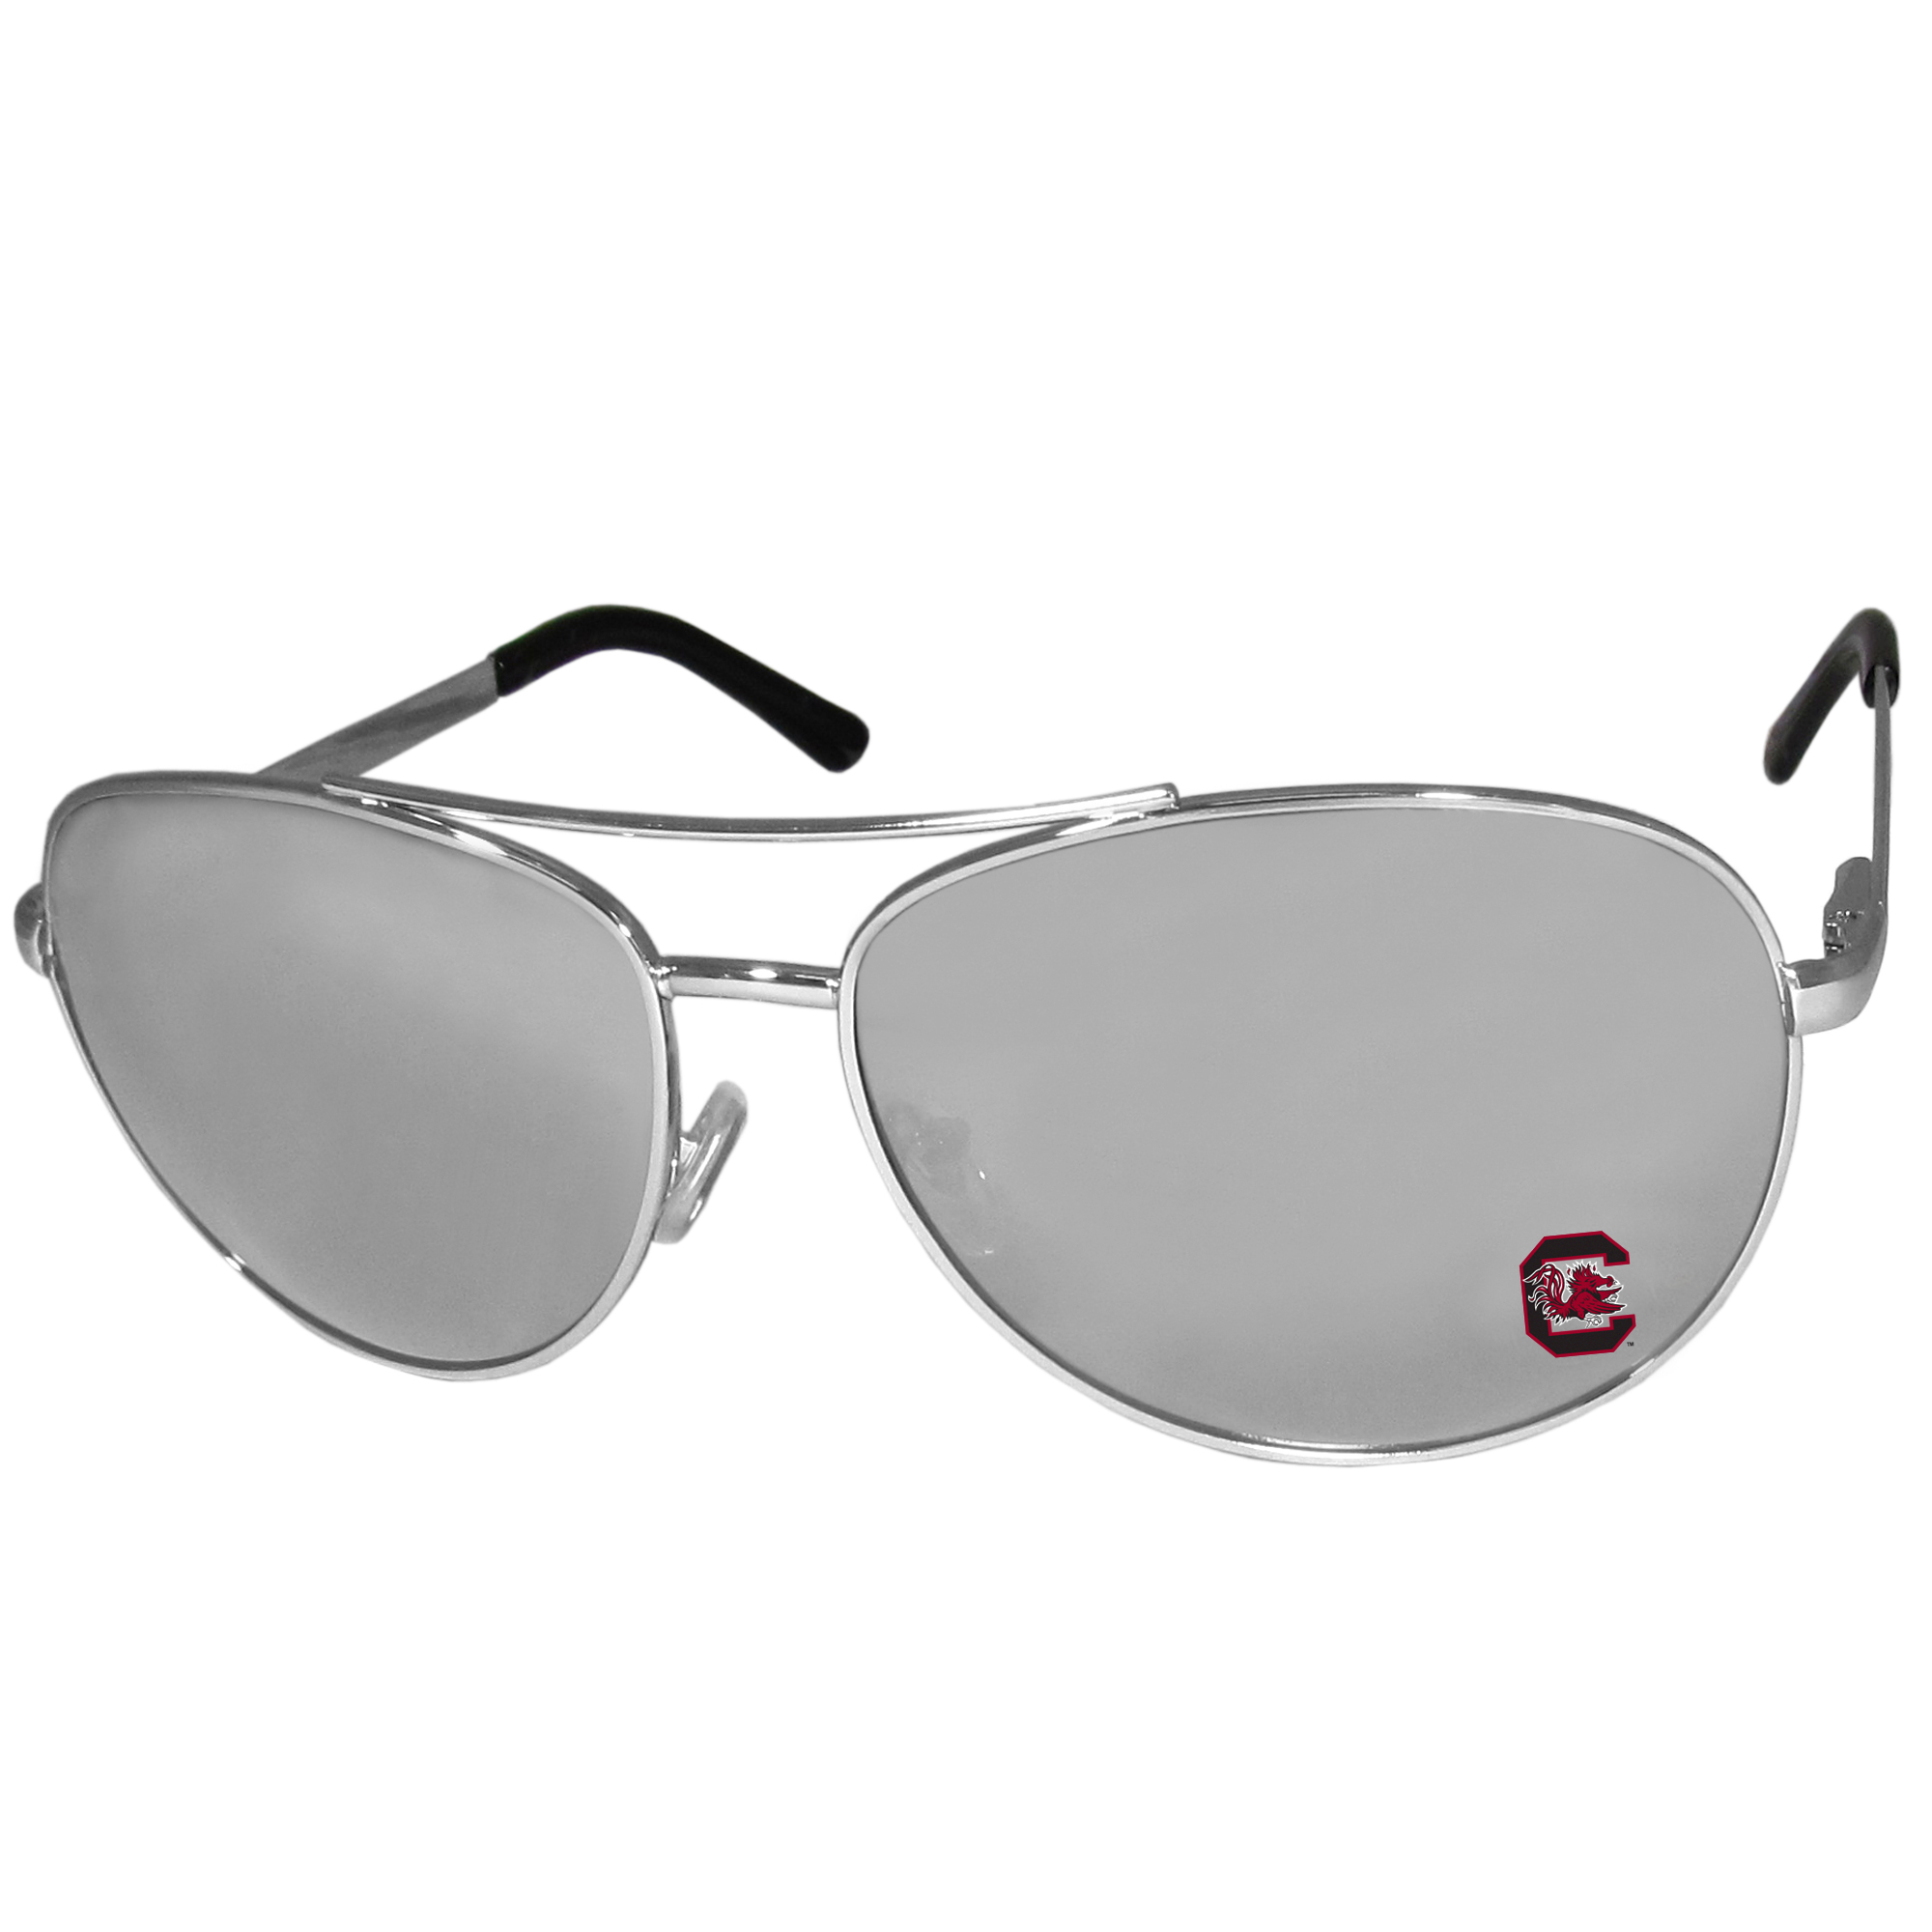 S. Carolina Gamecocks Aviator Sunglasses - Our aviator sunglasses have the iconic aviator style with mirrored lenses and metal frames. The glasses feature a silk screened S. Carolina Gamecocks logo in the corner of the lense. 100% UVA/UVB protection.